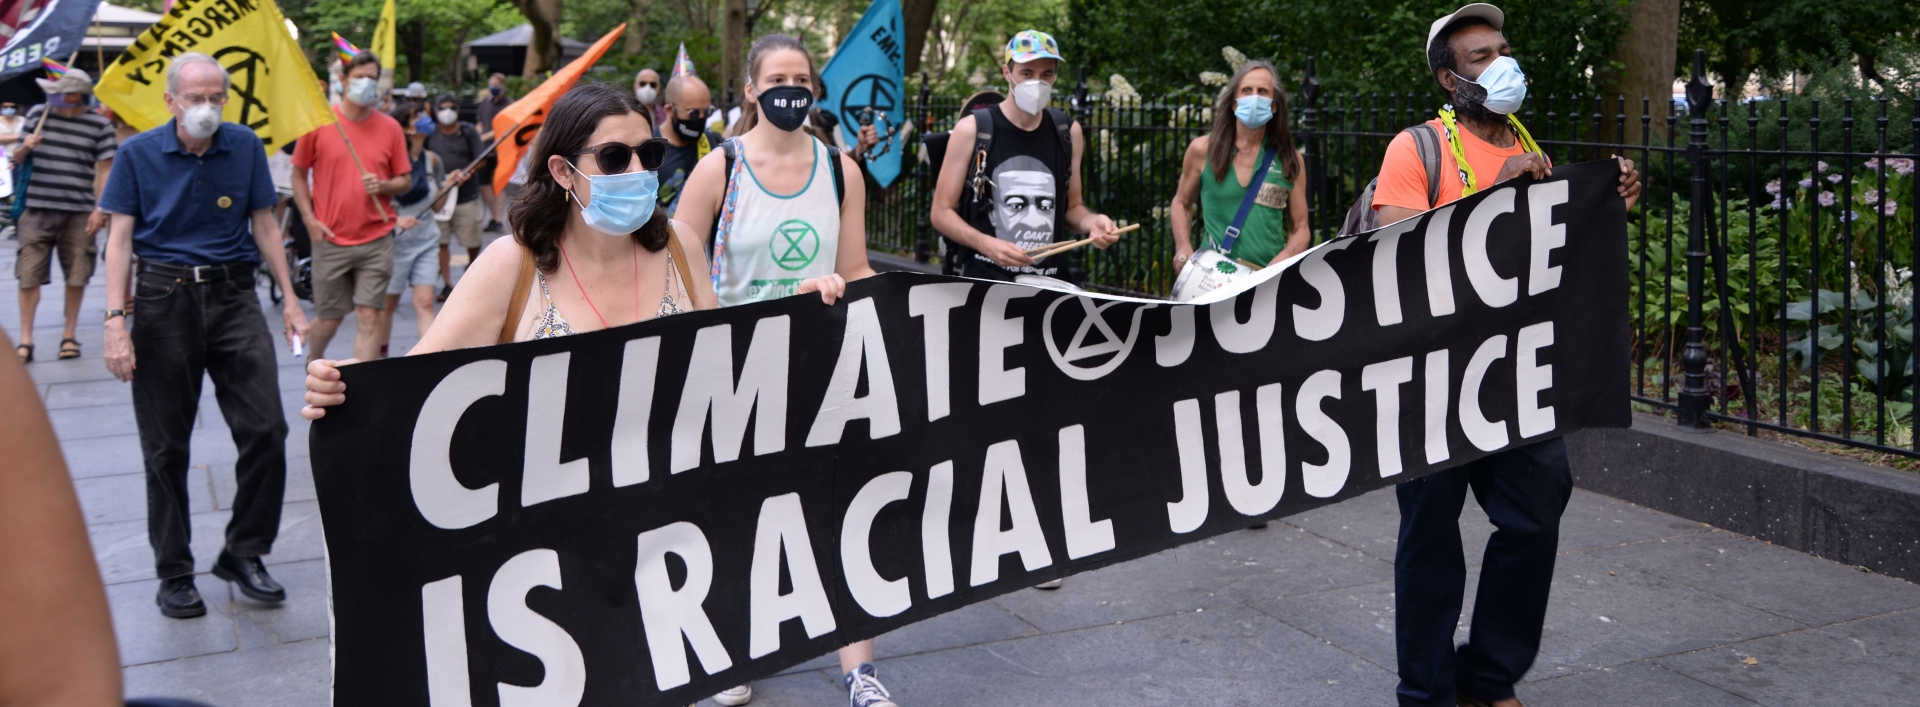 Climate justice march holding banner